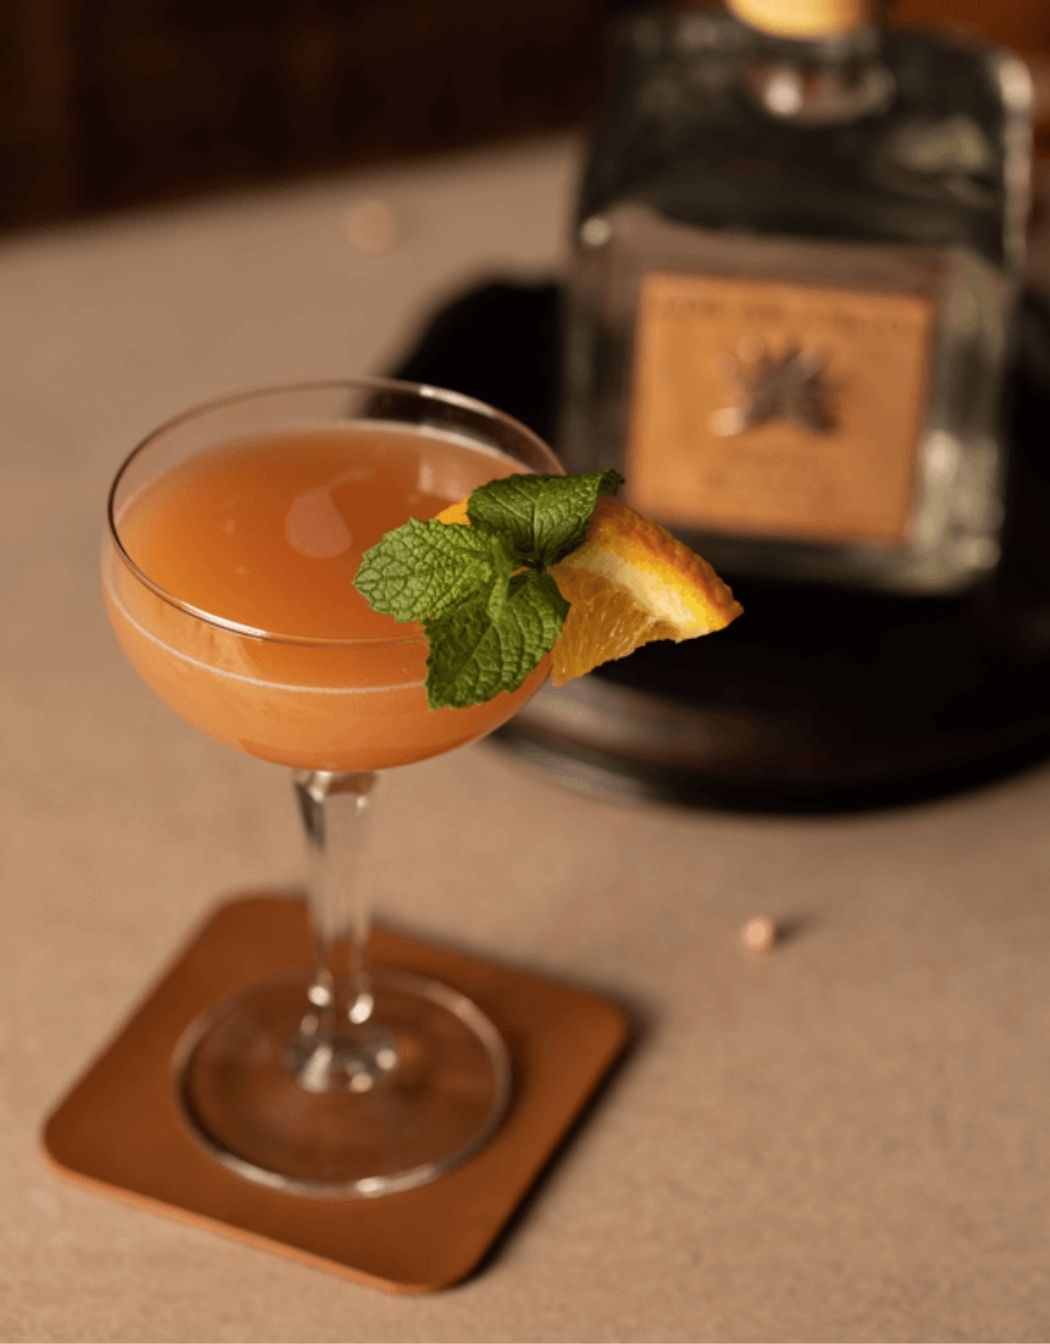 The Muse cocktail